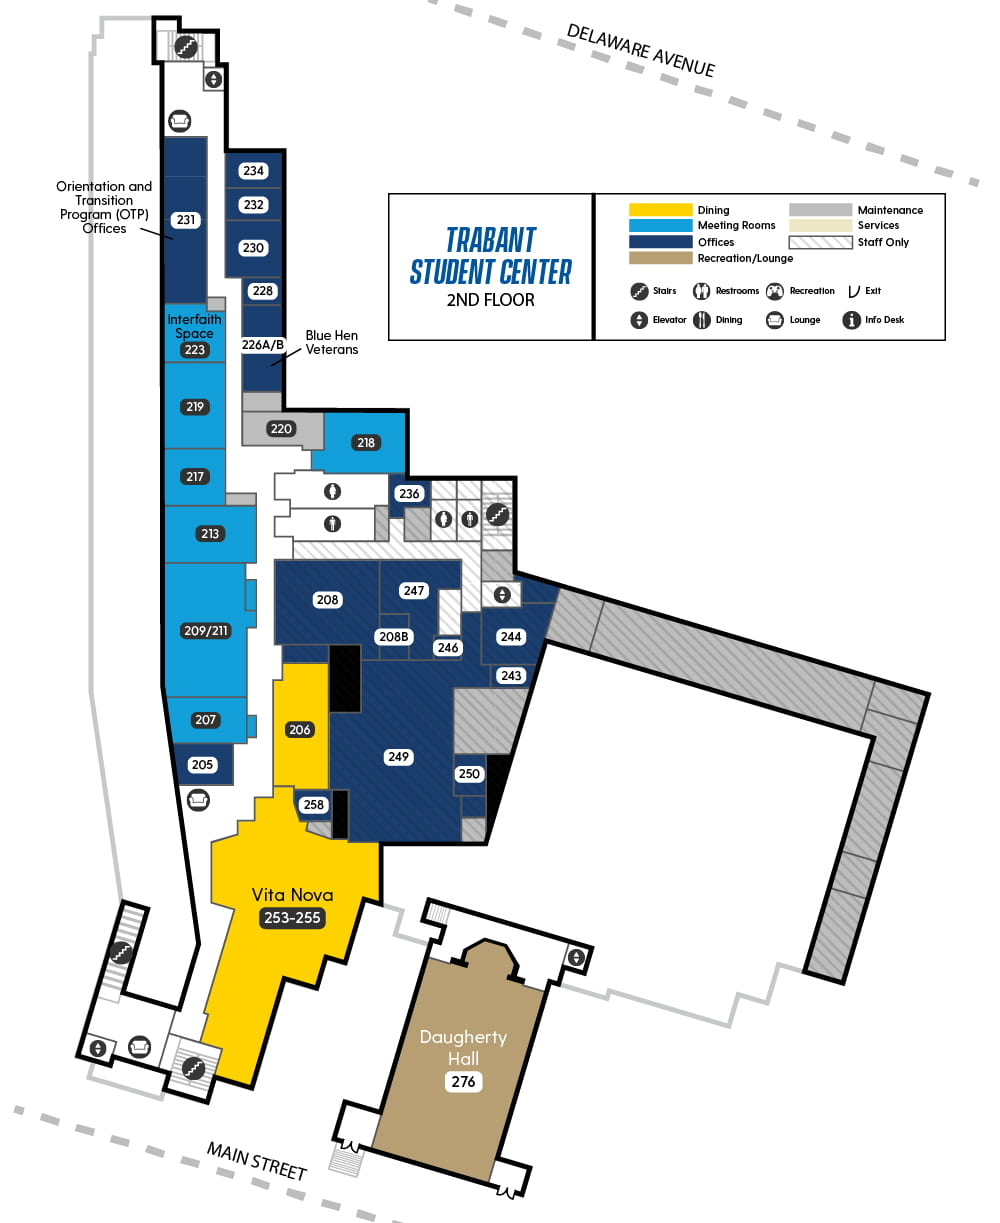 Map of Trabant Second Floor showing Vita Nova, Interfaith Space, Orientation & Transition Program Offices, and several reservable meeting spaces